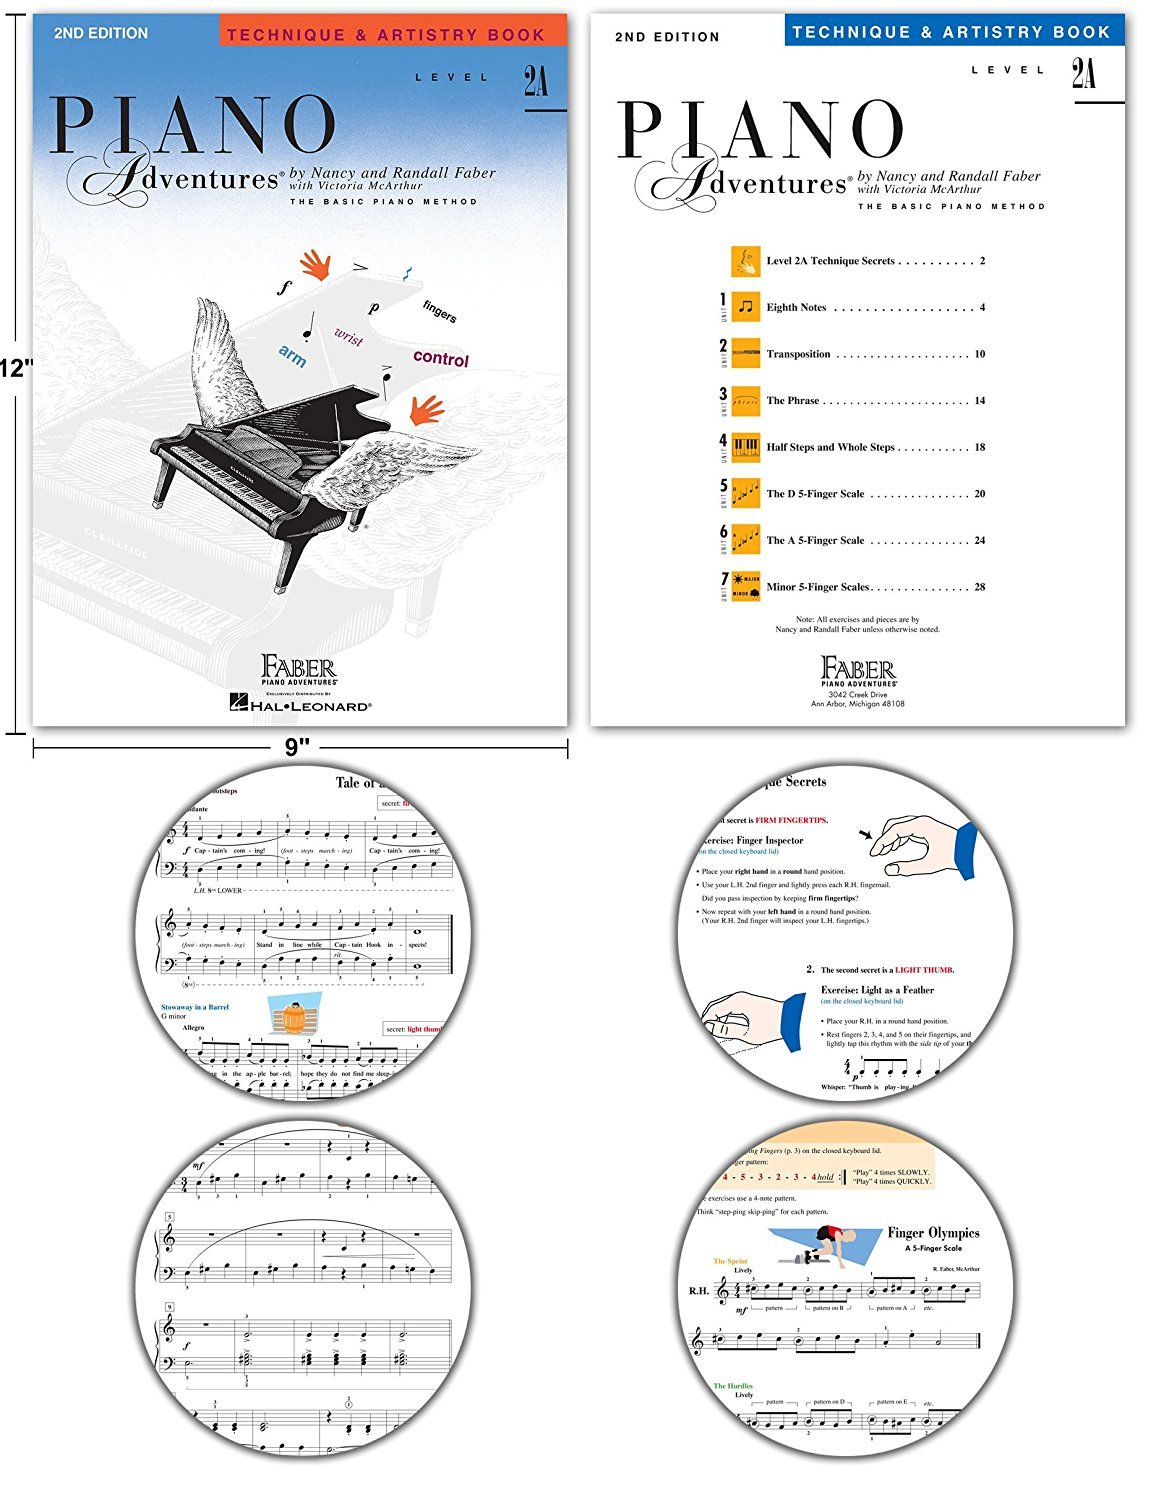 Faber Piano Adventures Level 2A 4-Pack Set, including Lesson, Theory, Performance, Technique & Artistry Books